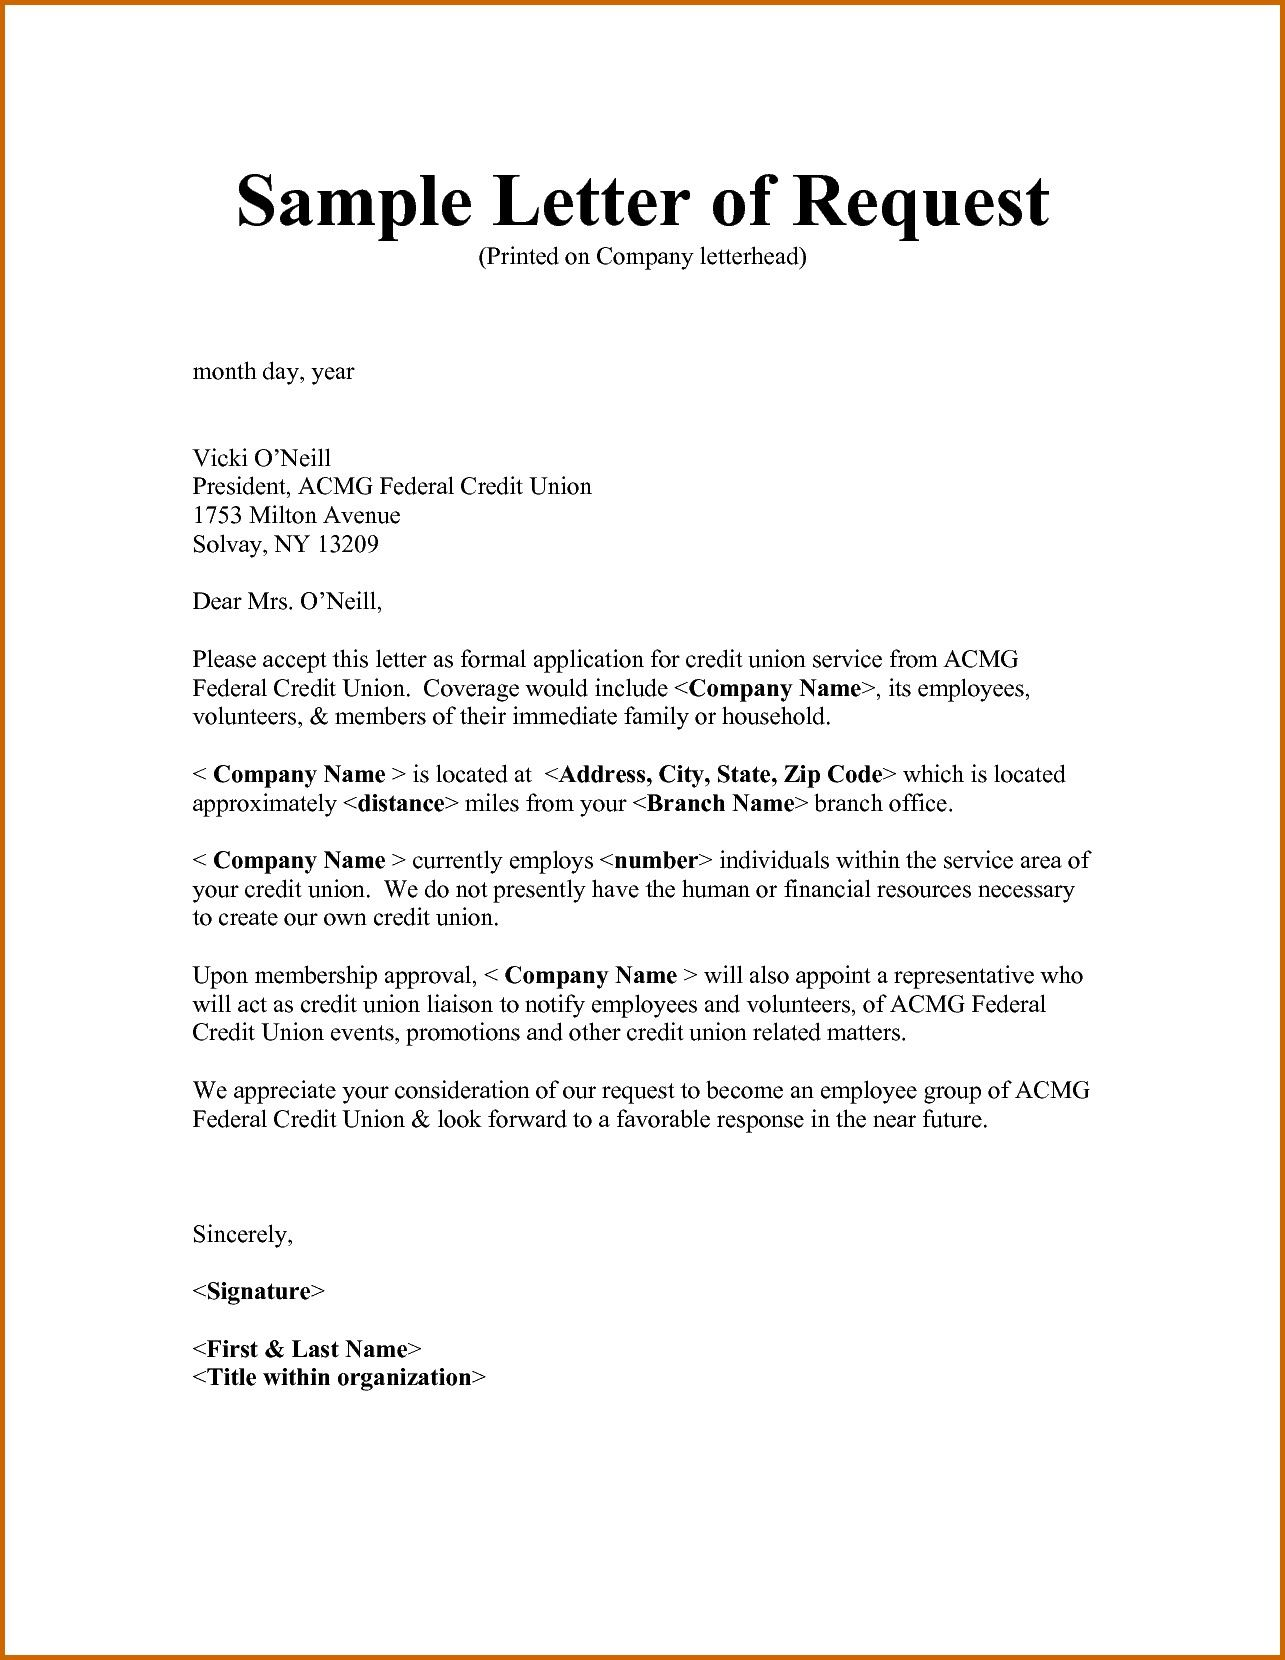 Example Letter Of Request for Approval Fresh 6 How to Write A Request Letter | BARANI | Letter ...